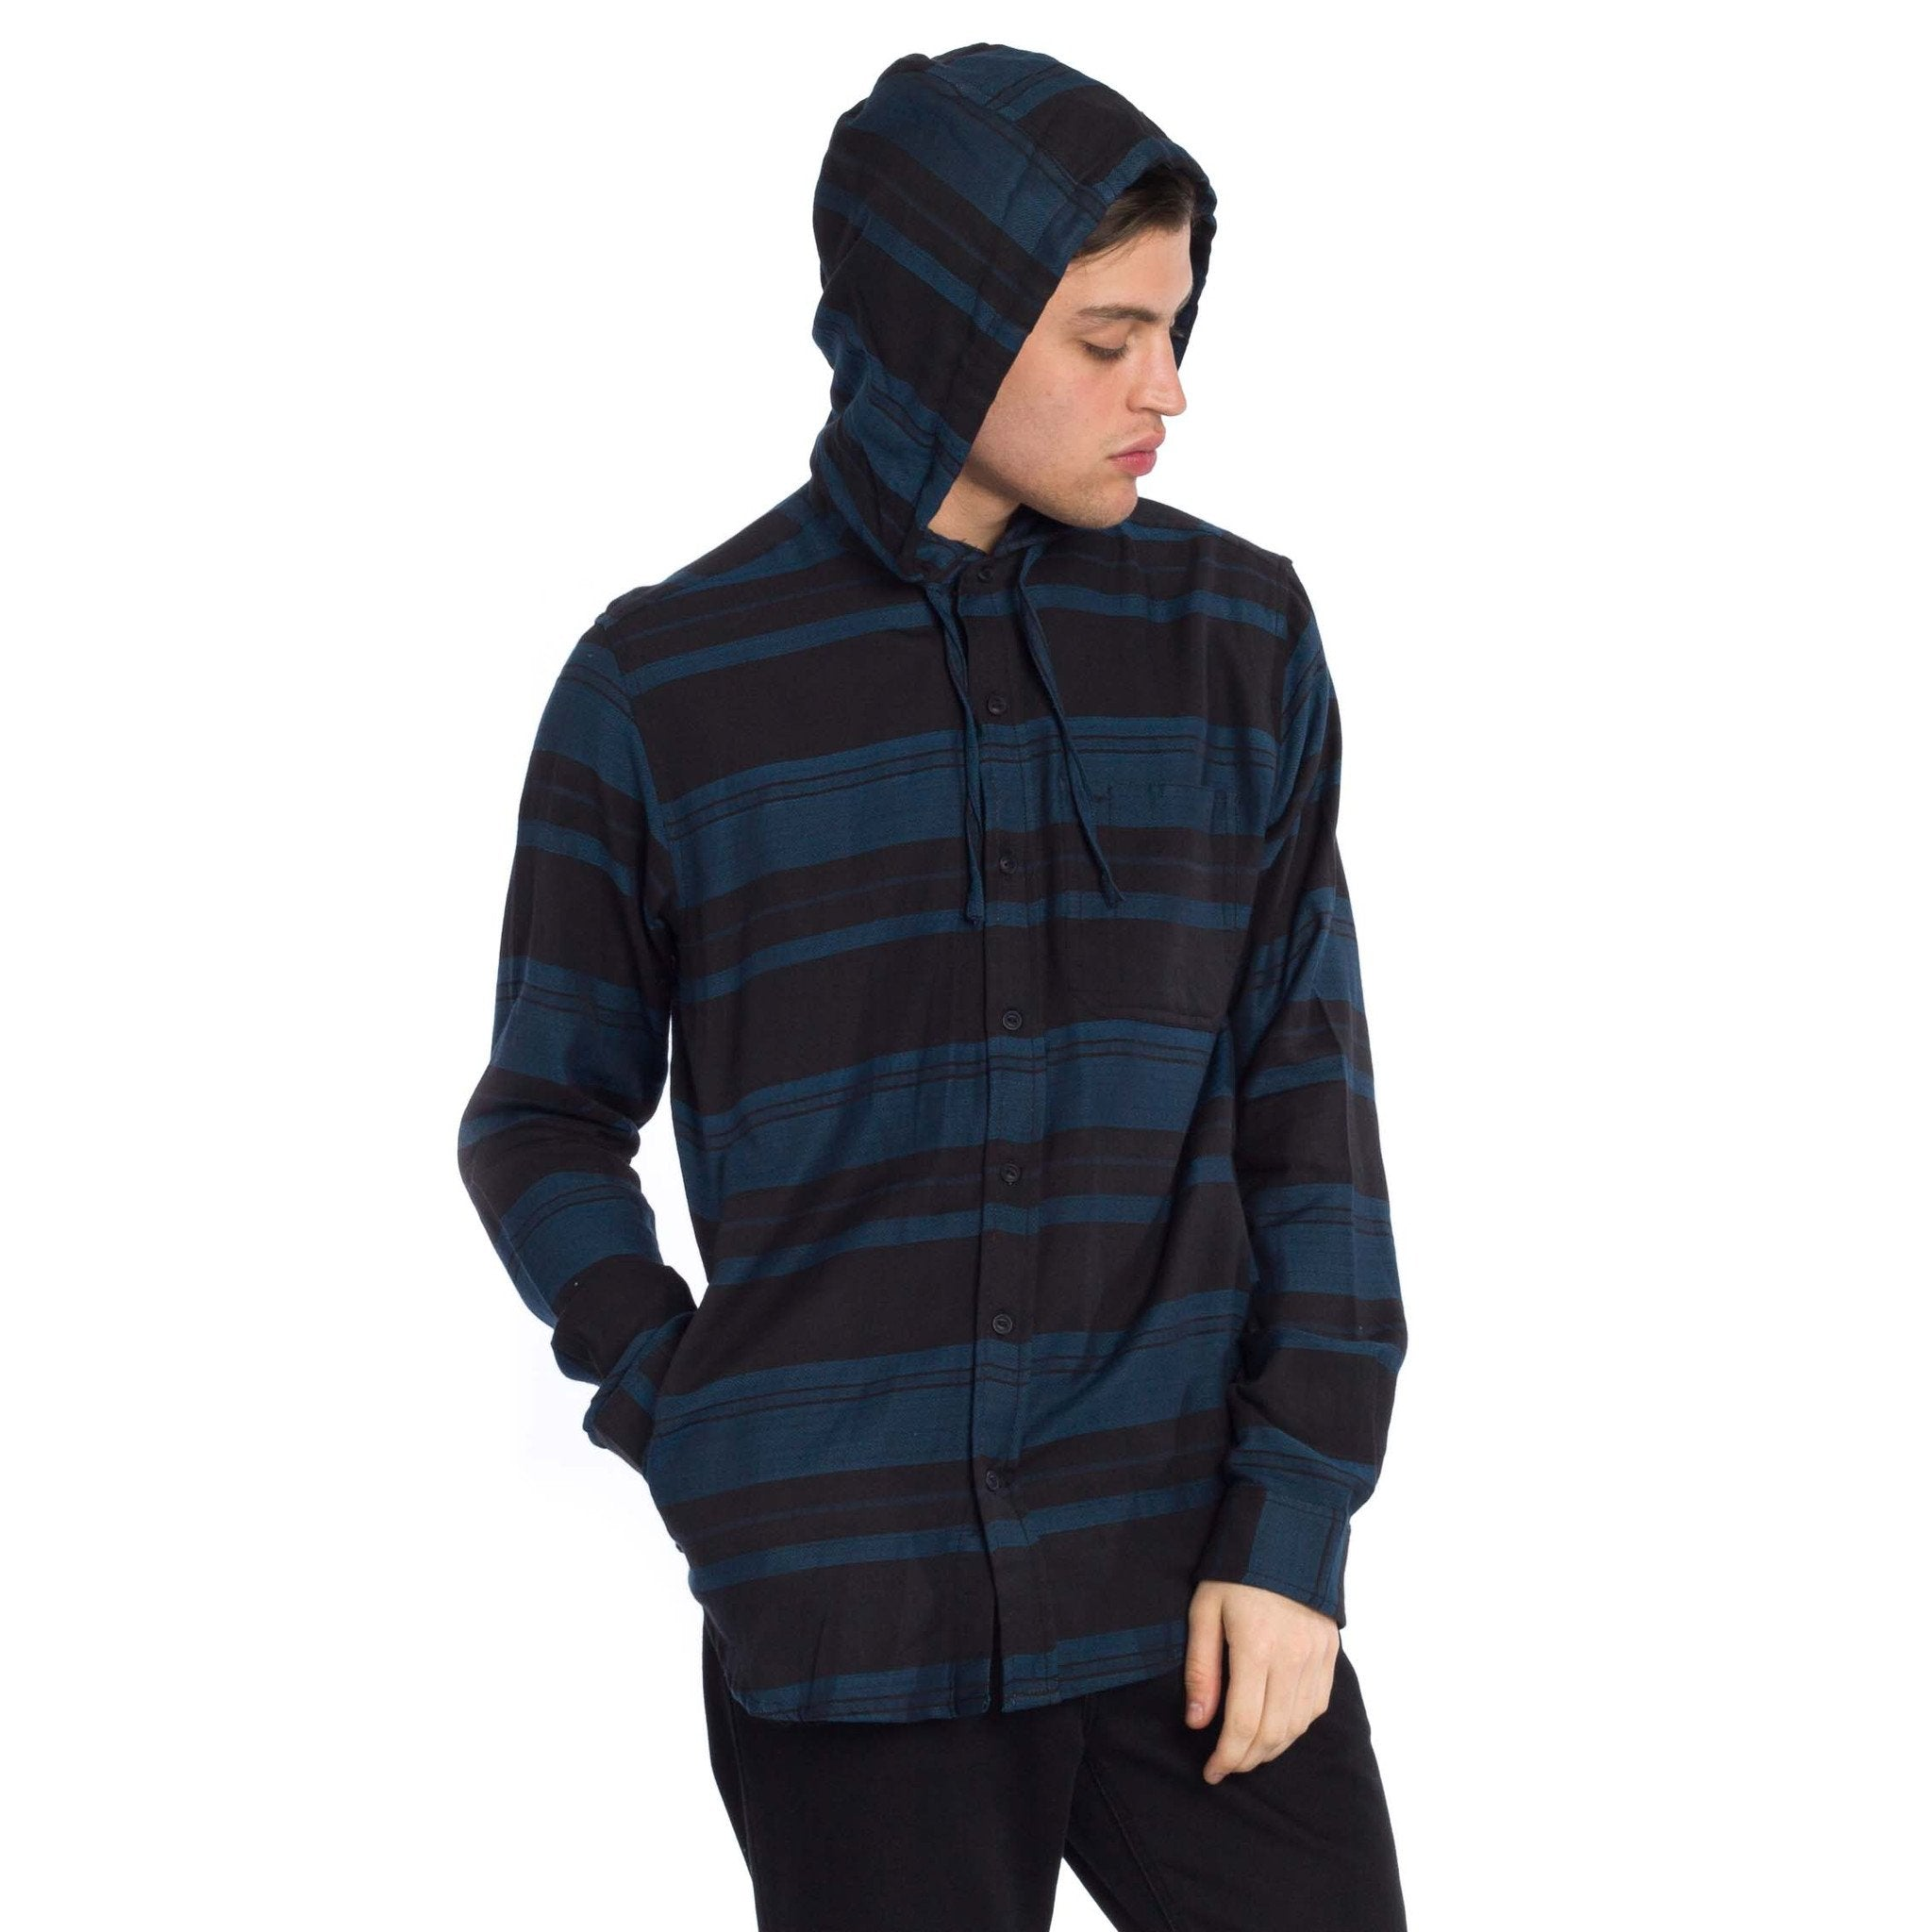 Kruze Hooded Shirt - Navy